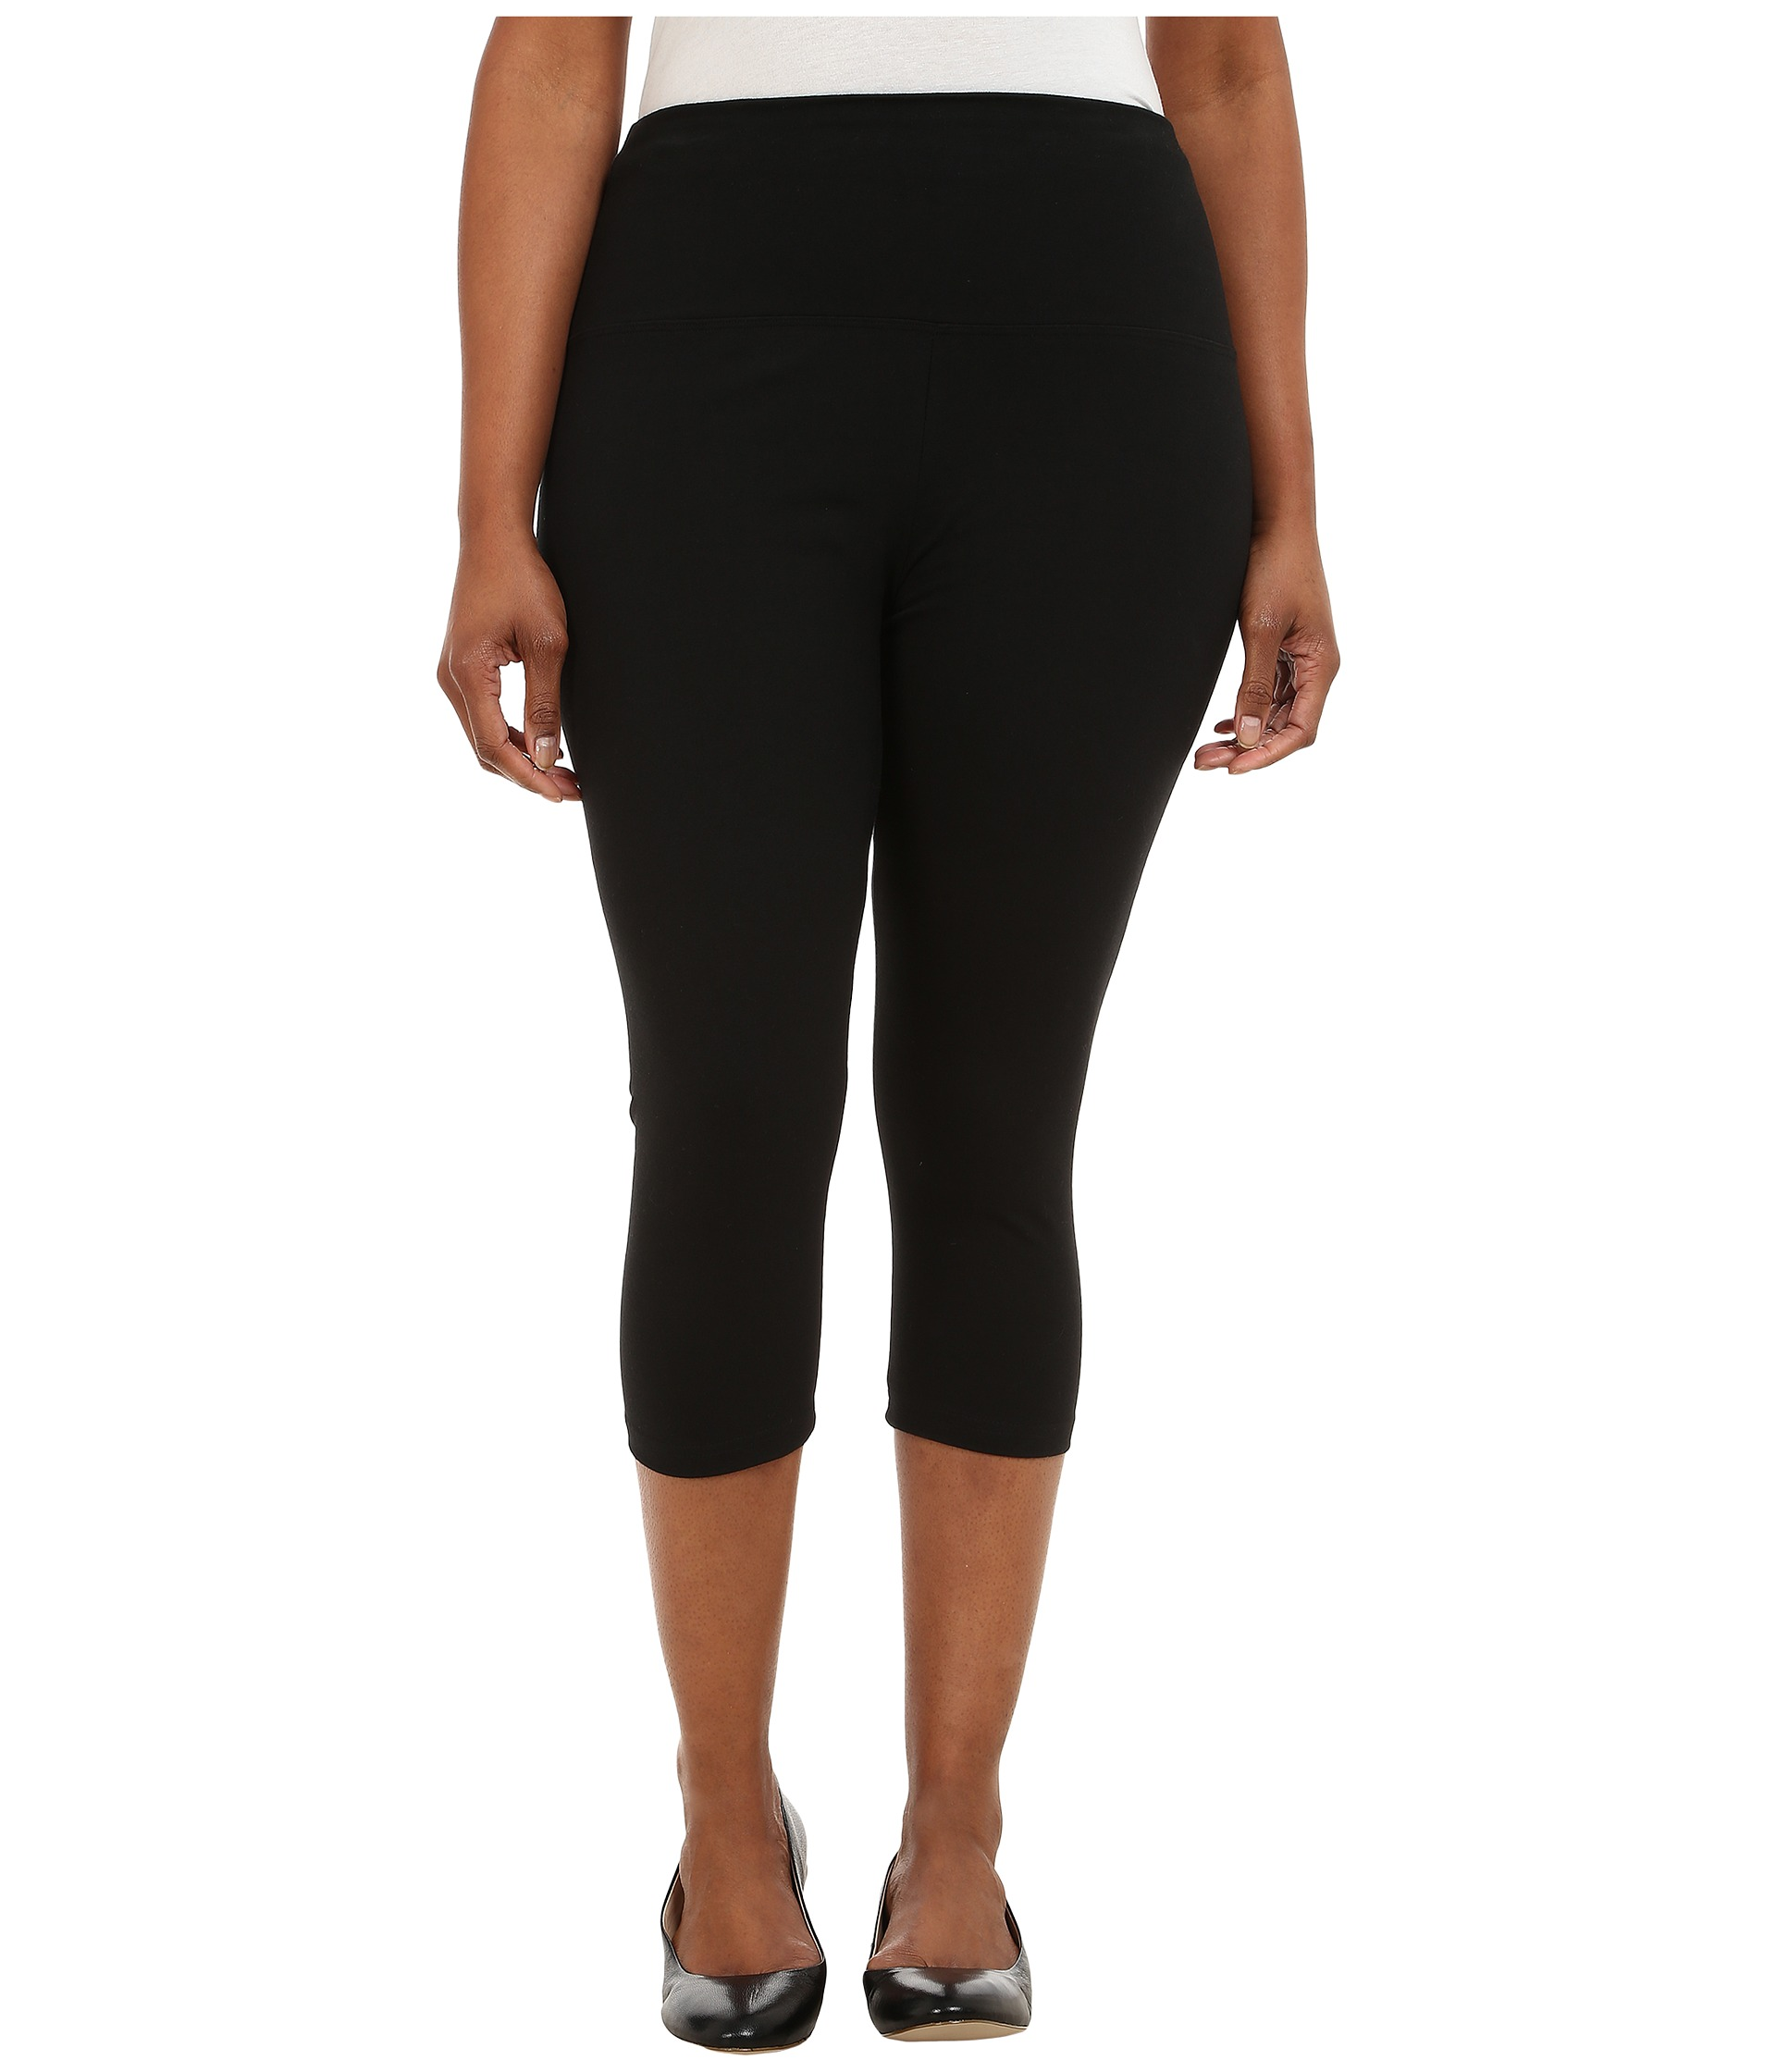 Lysse Plus Size Cotton Capri 12150 at Zappos.com